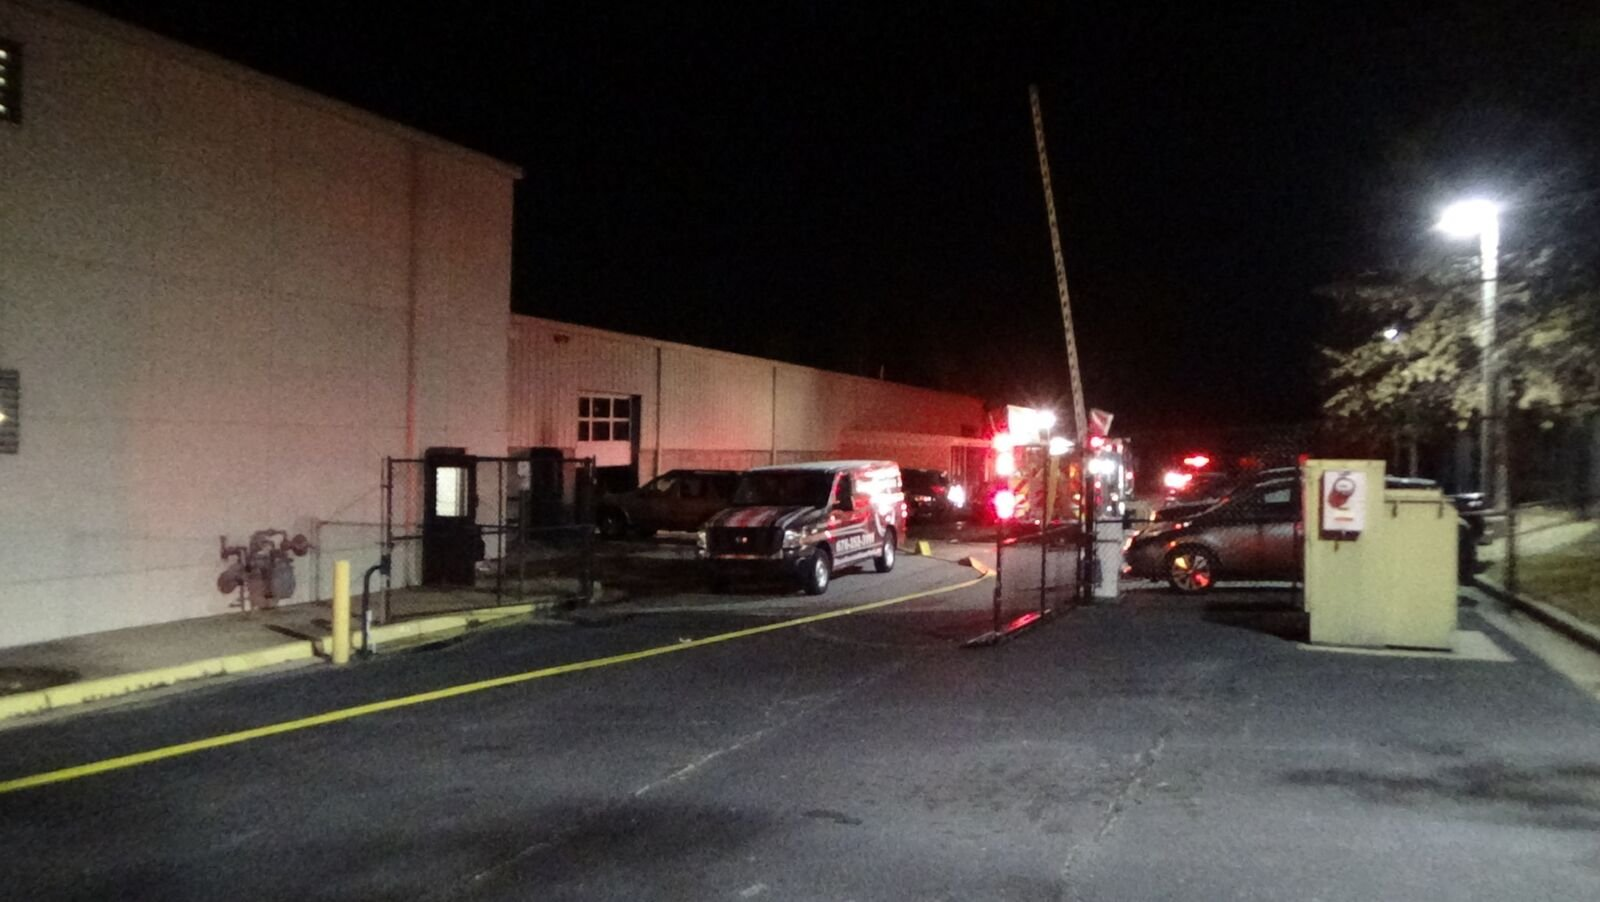 A nissan dealership in unincorporated lilburn suffered damage after a car burned in its service area